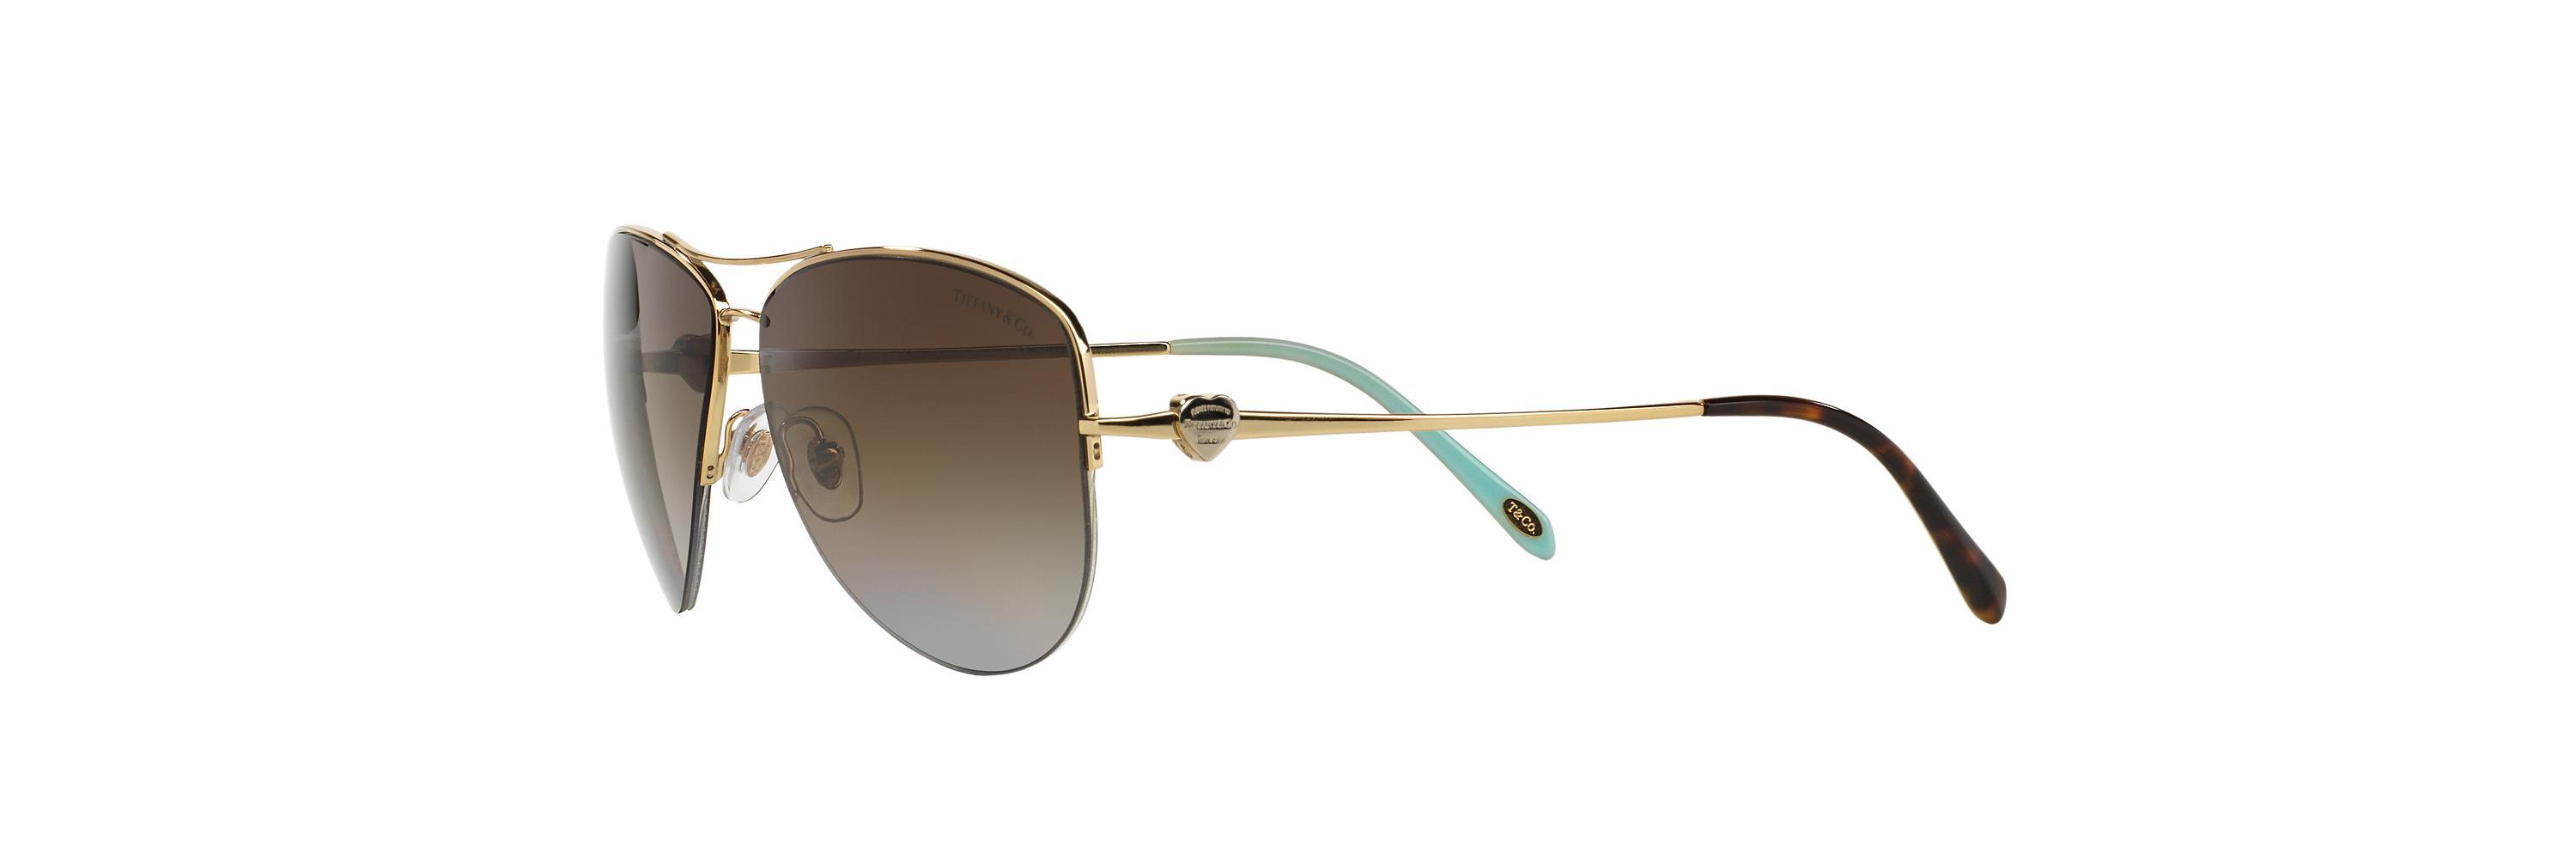 67a6d60bcc97 Lyst - Tiffany & Co. Tf3021 in Brown